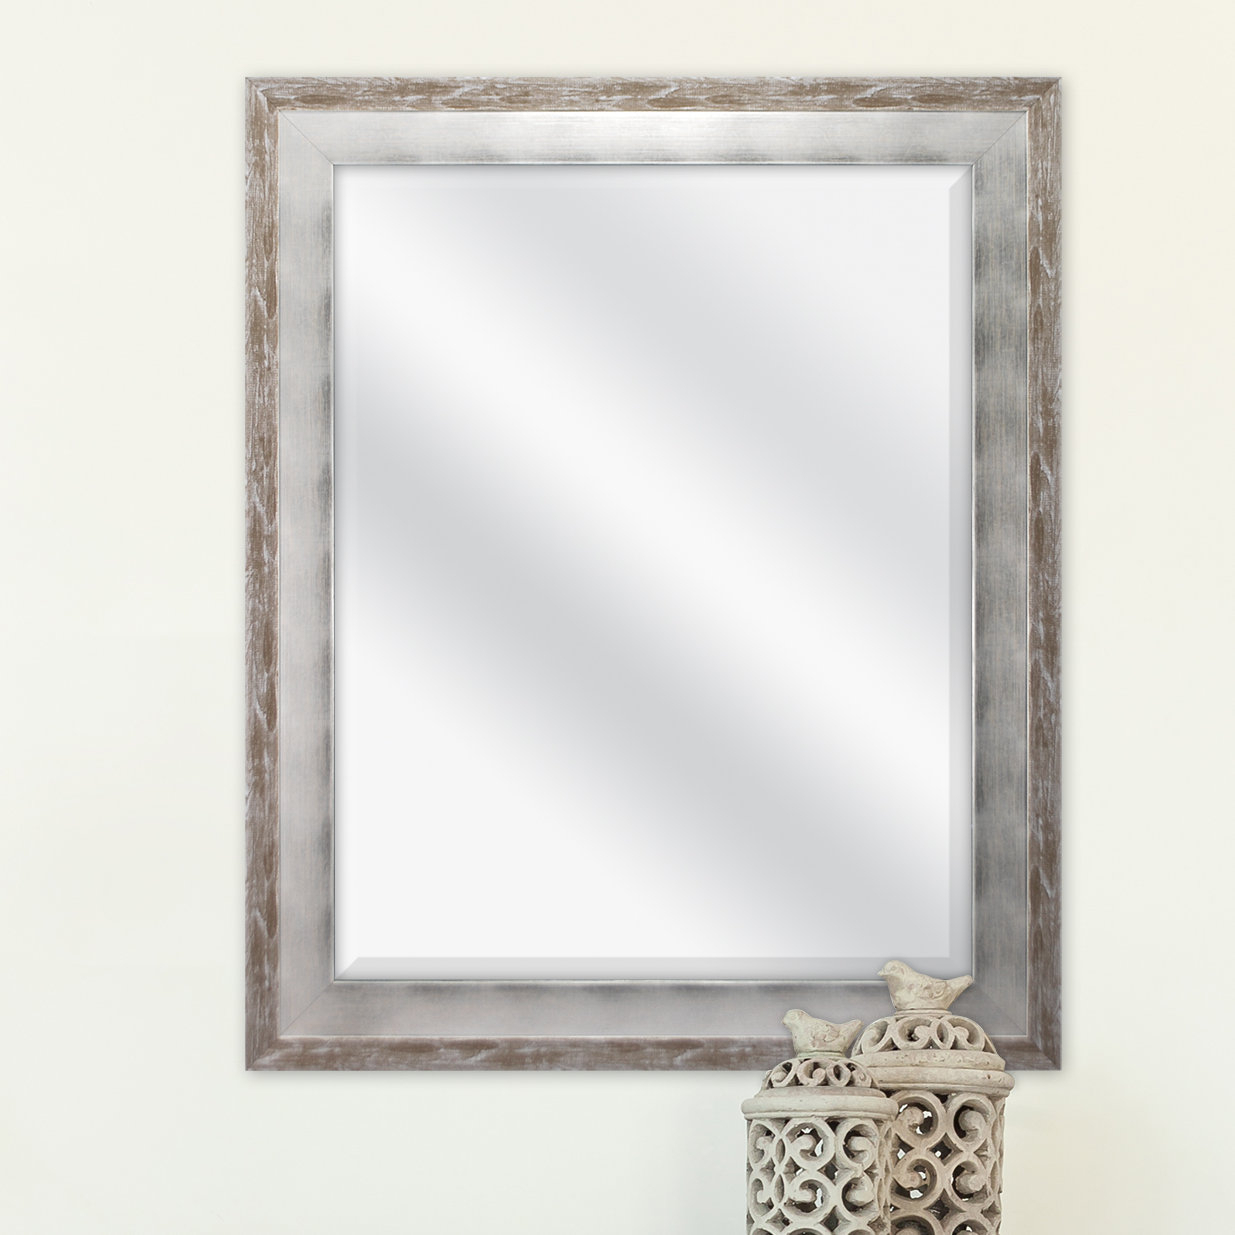 Epinal Shabby Elegance Wall Mirror Regarding Stamey Wall Mirrors (Image 6 of 20)